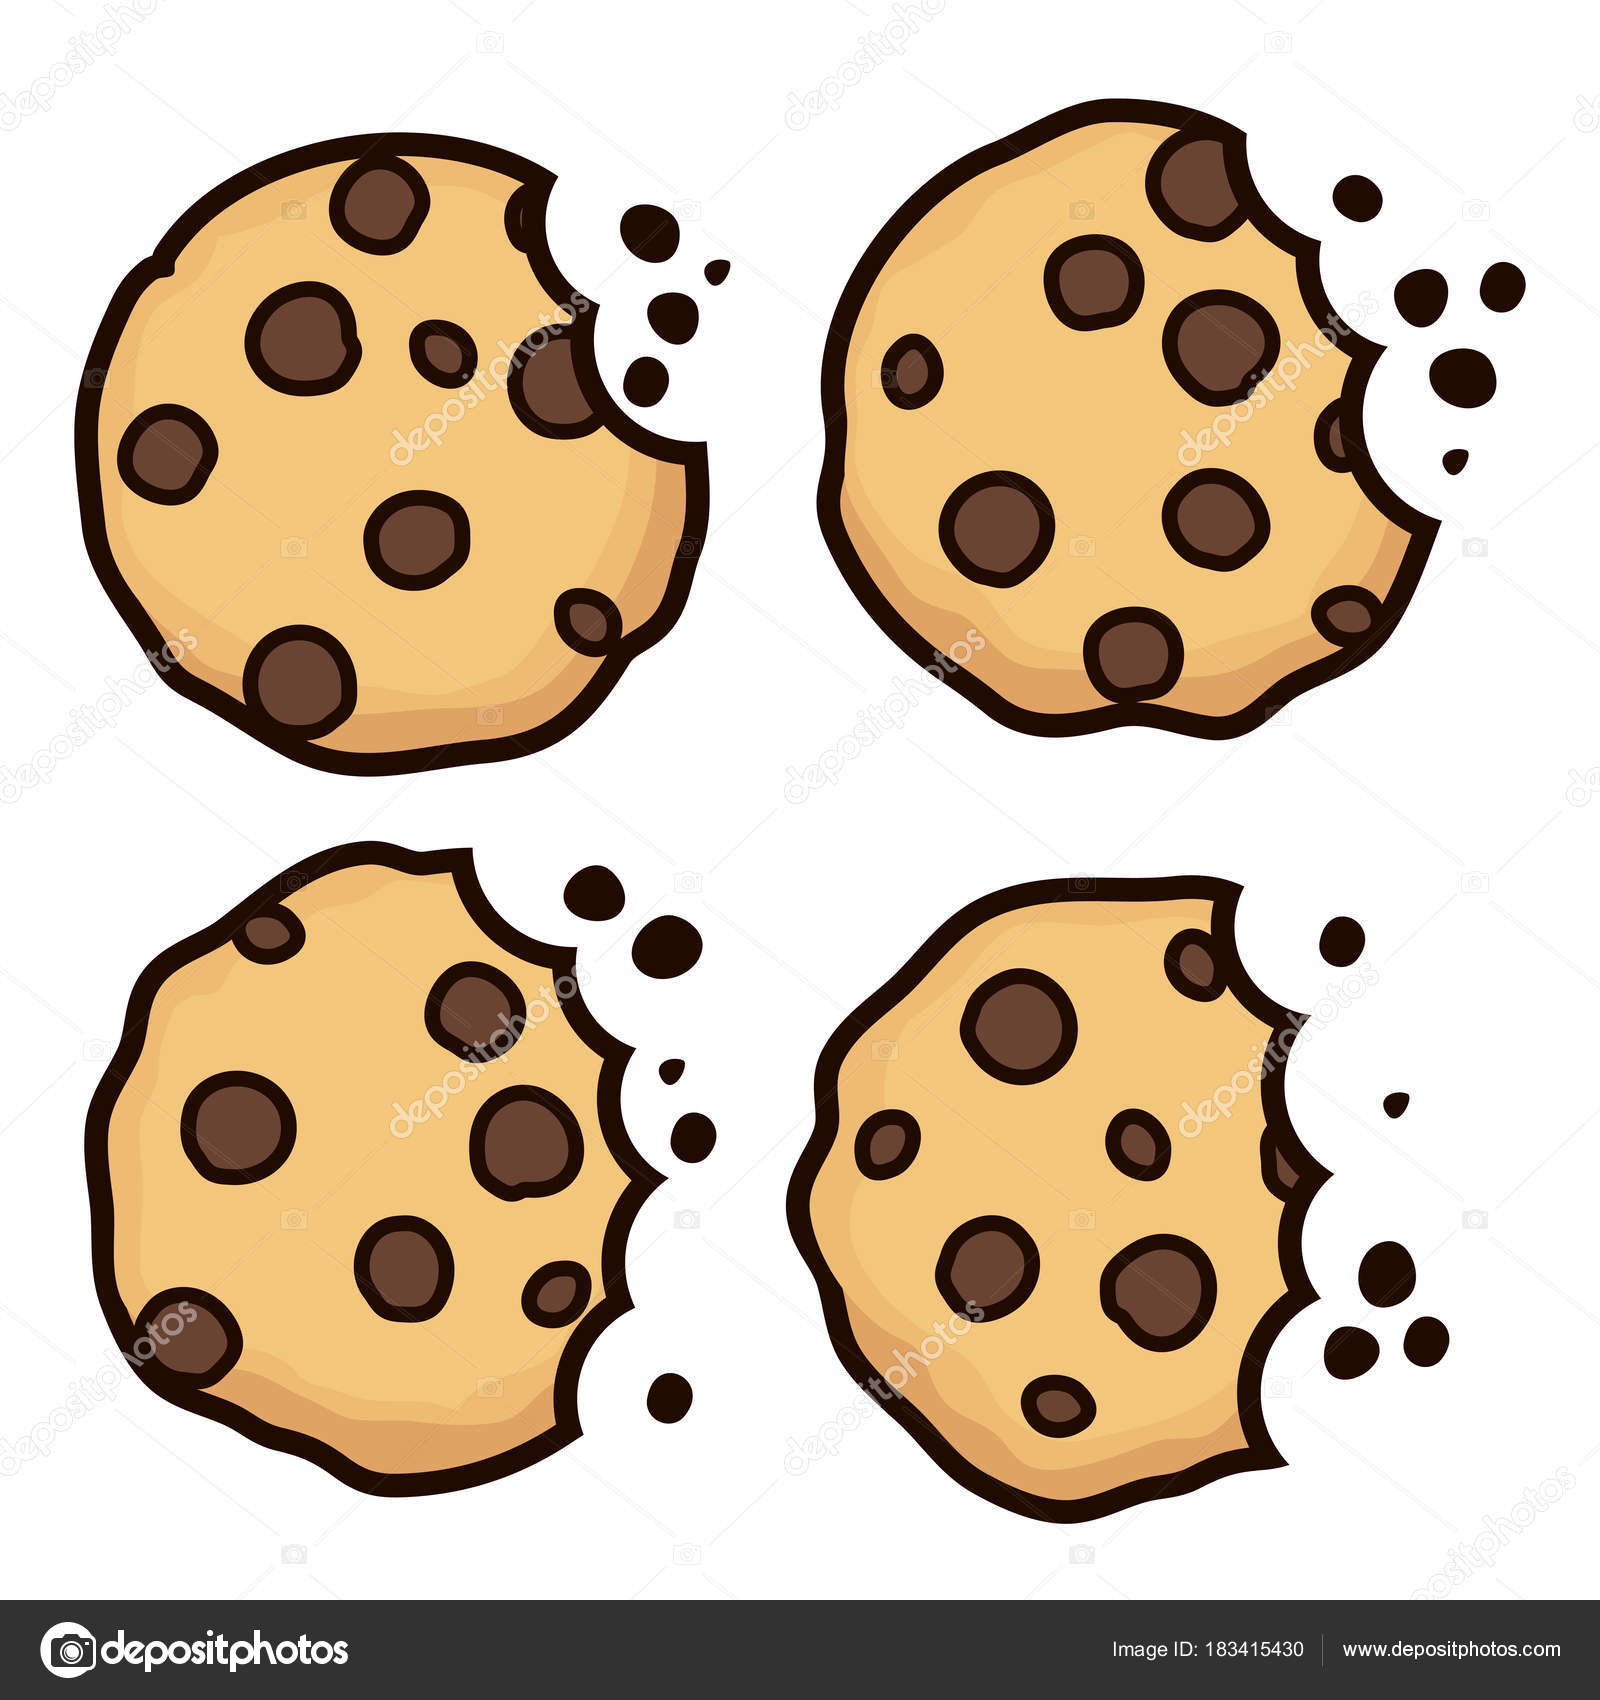 14 cliparts for free. Download Cookies clipart choco chip.